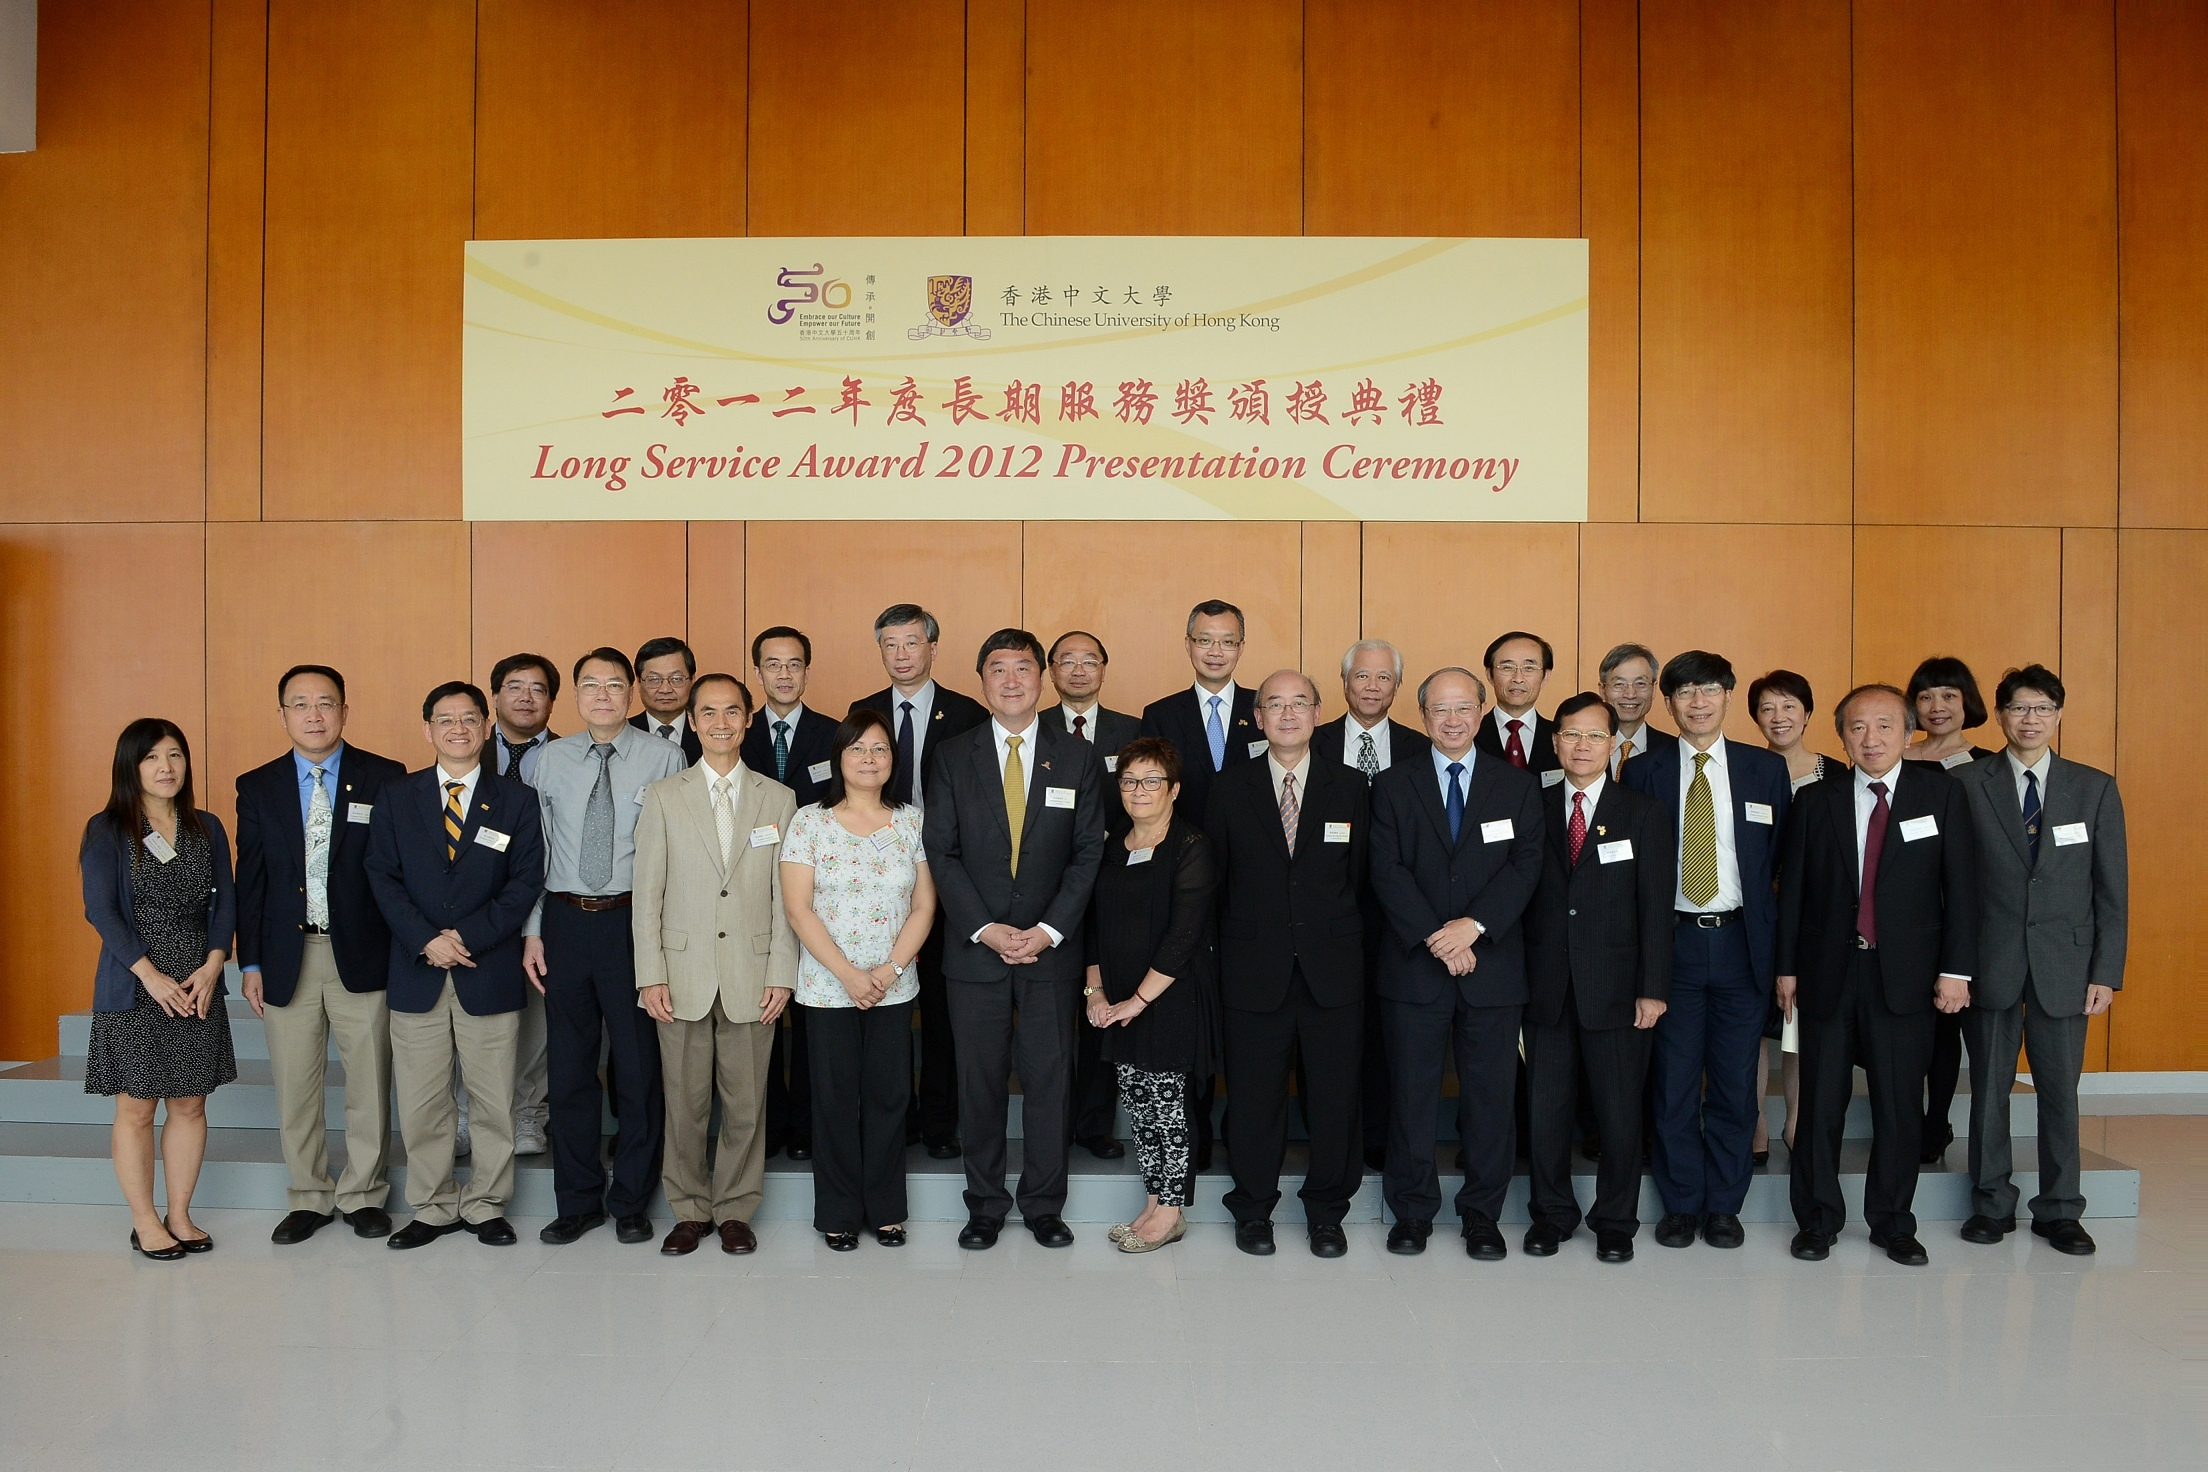 Vice-Chancellor Prof. Joseph J.Y. Sung presents the 2012 Long Service Awards to staff members who have been with the University for 25 and 35 years.